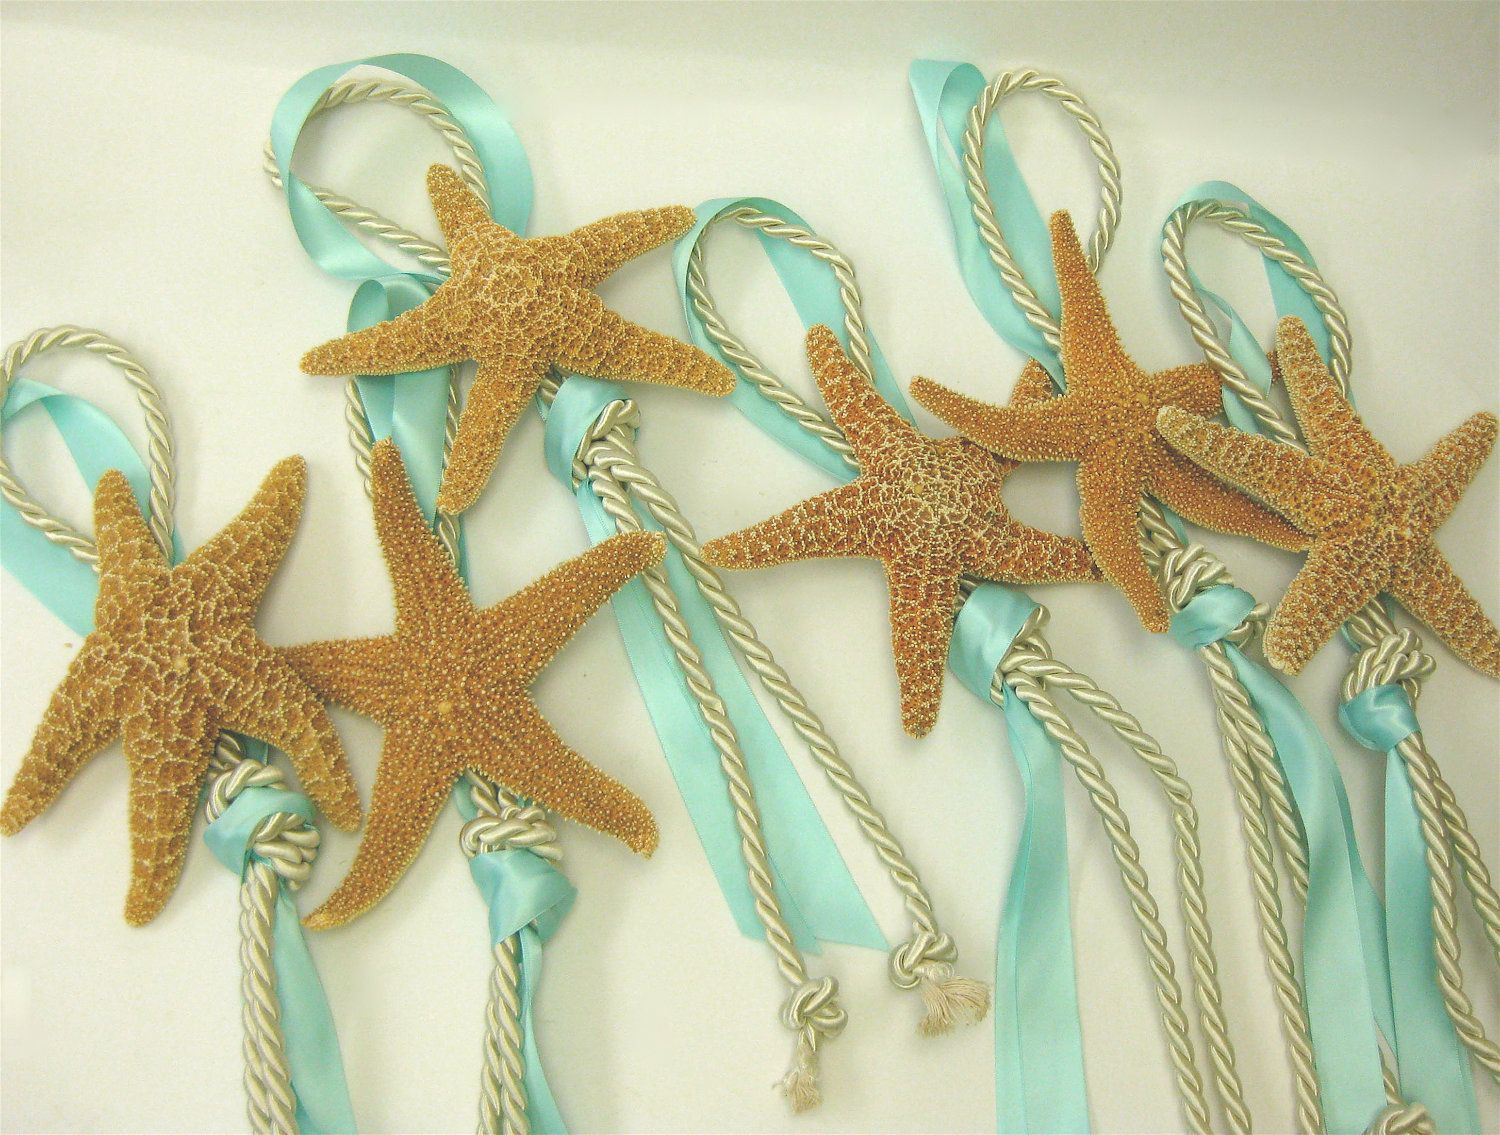 starfish wedding chair decorations bobby knight throws beach decoration natural white or